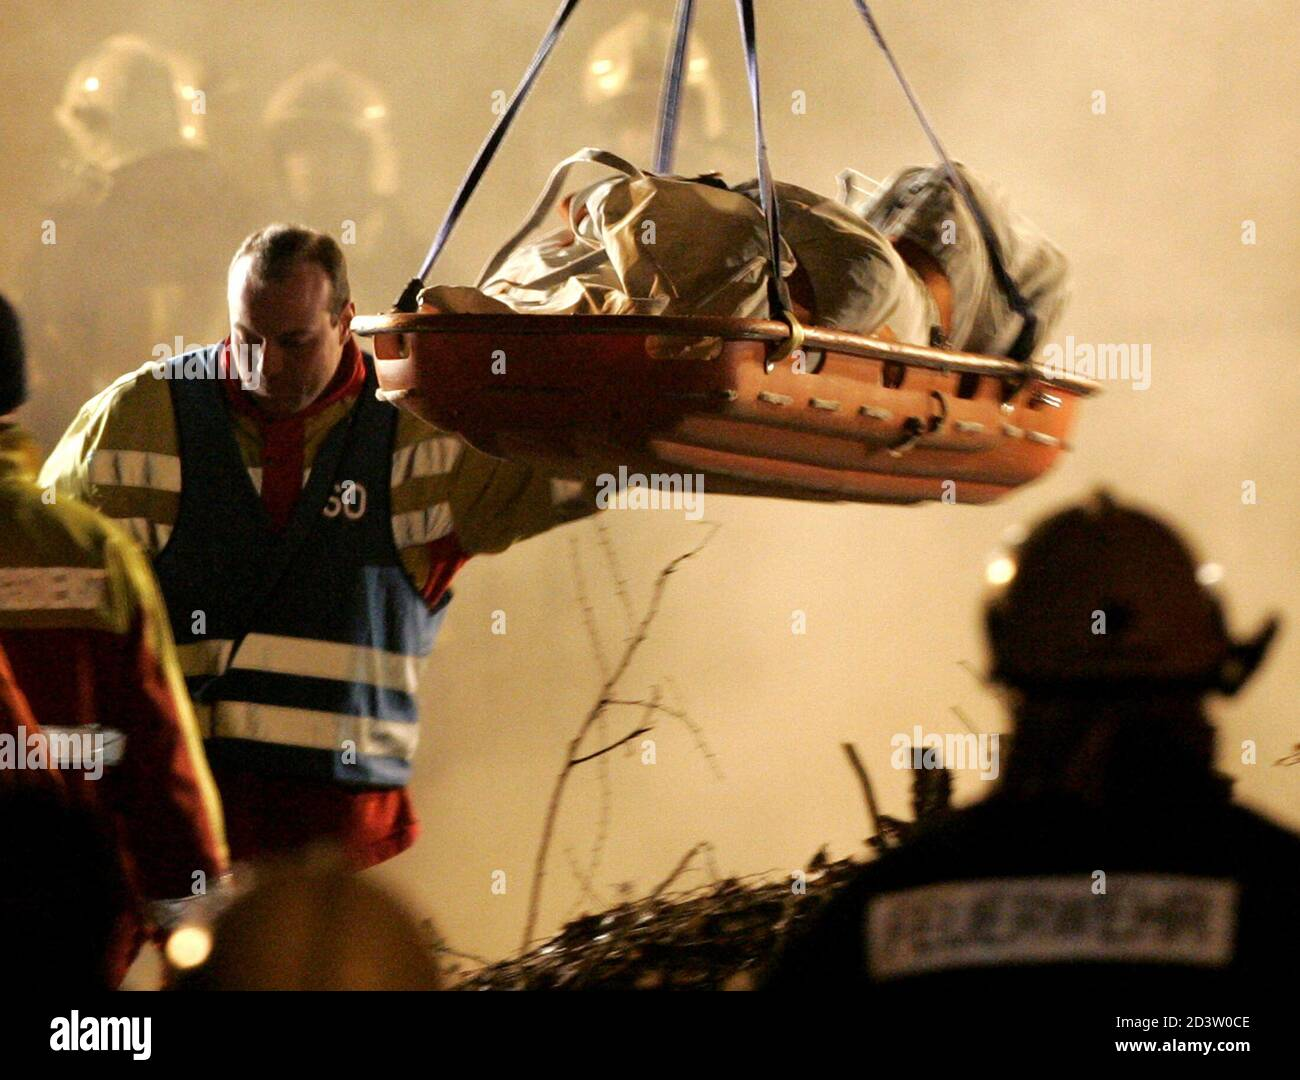 The body of a firefighter is lifted from an underground car park after the roof collapsed and buried up to seven fire fighters in the town of Gretzenbach between the cities of Basel and Zurich November 27, 2004. Construction experts, earthquake rescue specialists and other fire and rescue personnel raced against time to find the men who had been battling a fire in the residential car park when the roof caved in and trapped them in its rubble. Pictures of the month November 2004 REUTERS/Ruben Sprich  RS/WS Stock Photo